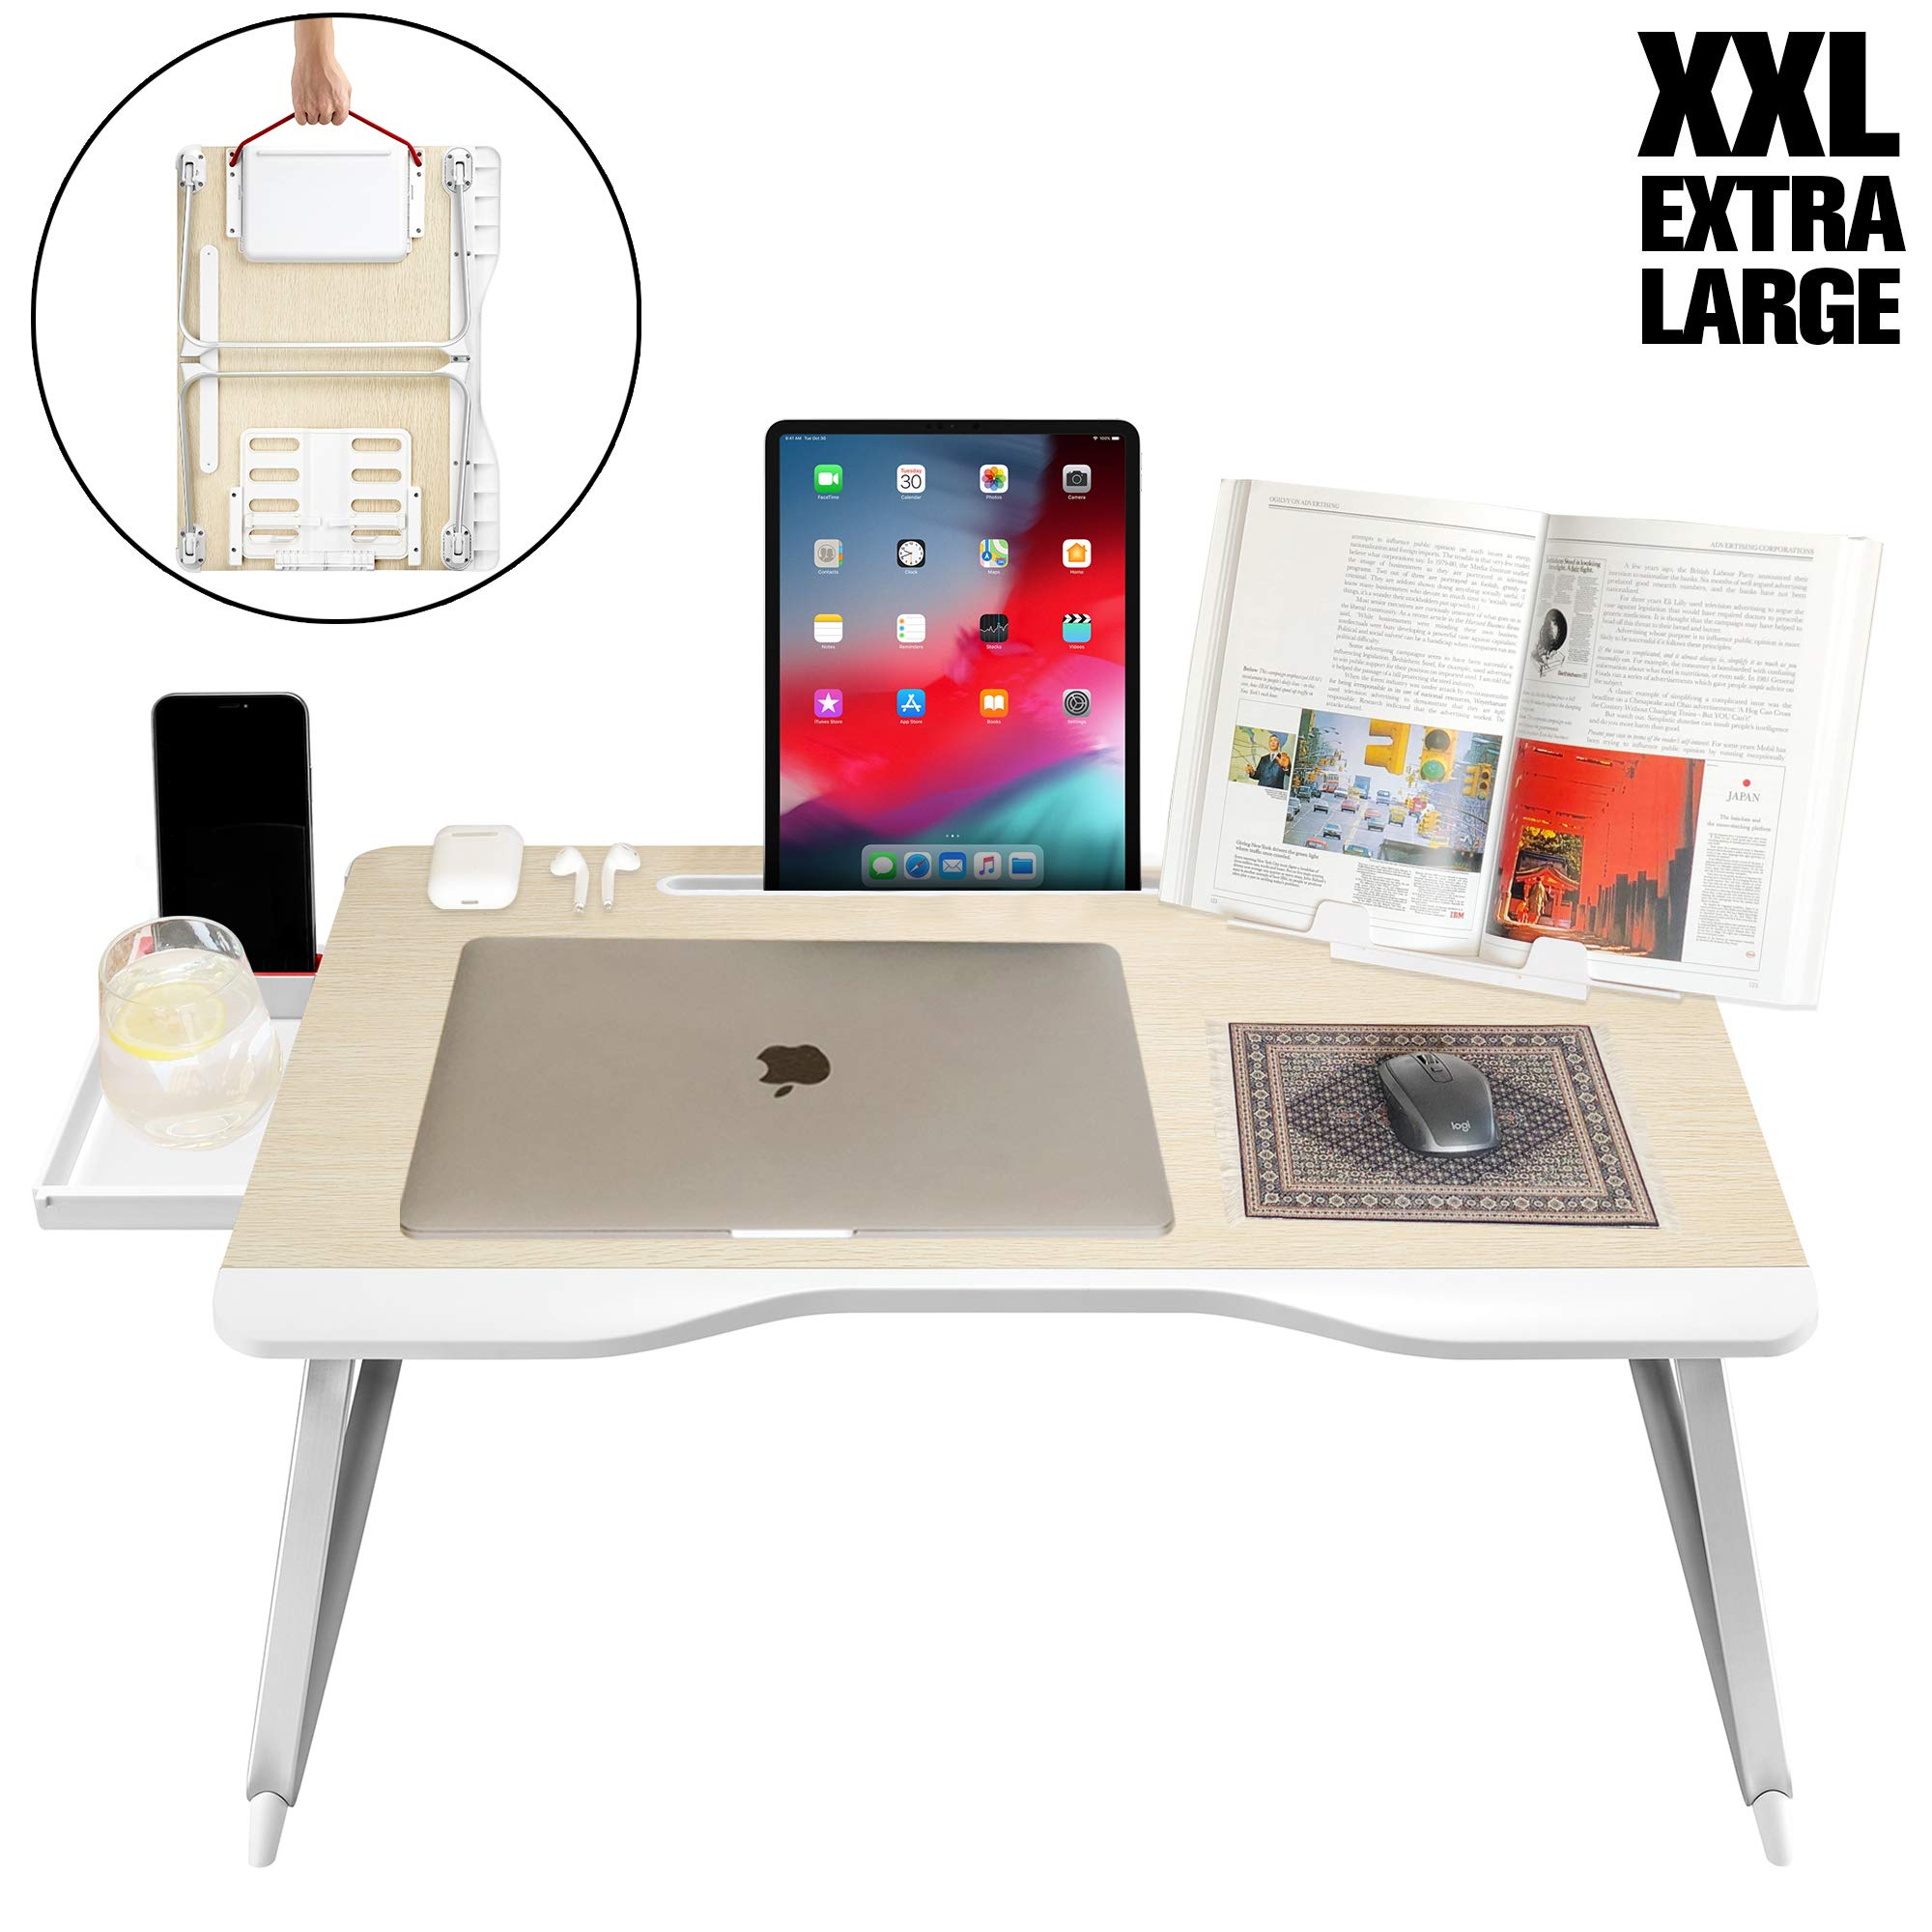 Cooper Mega Table [XXL Folding Laptop Desk] for Bed & Sofa | Couch Table, Bed Desk, Laptop, Writing, Study, Eating Storage, Reading Stand (White Oak) by Cooper Cases